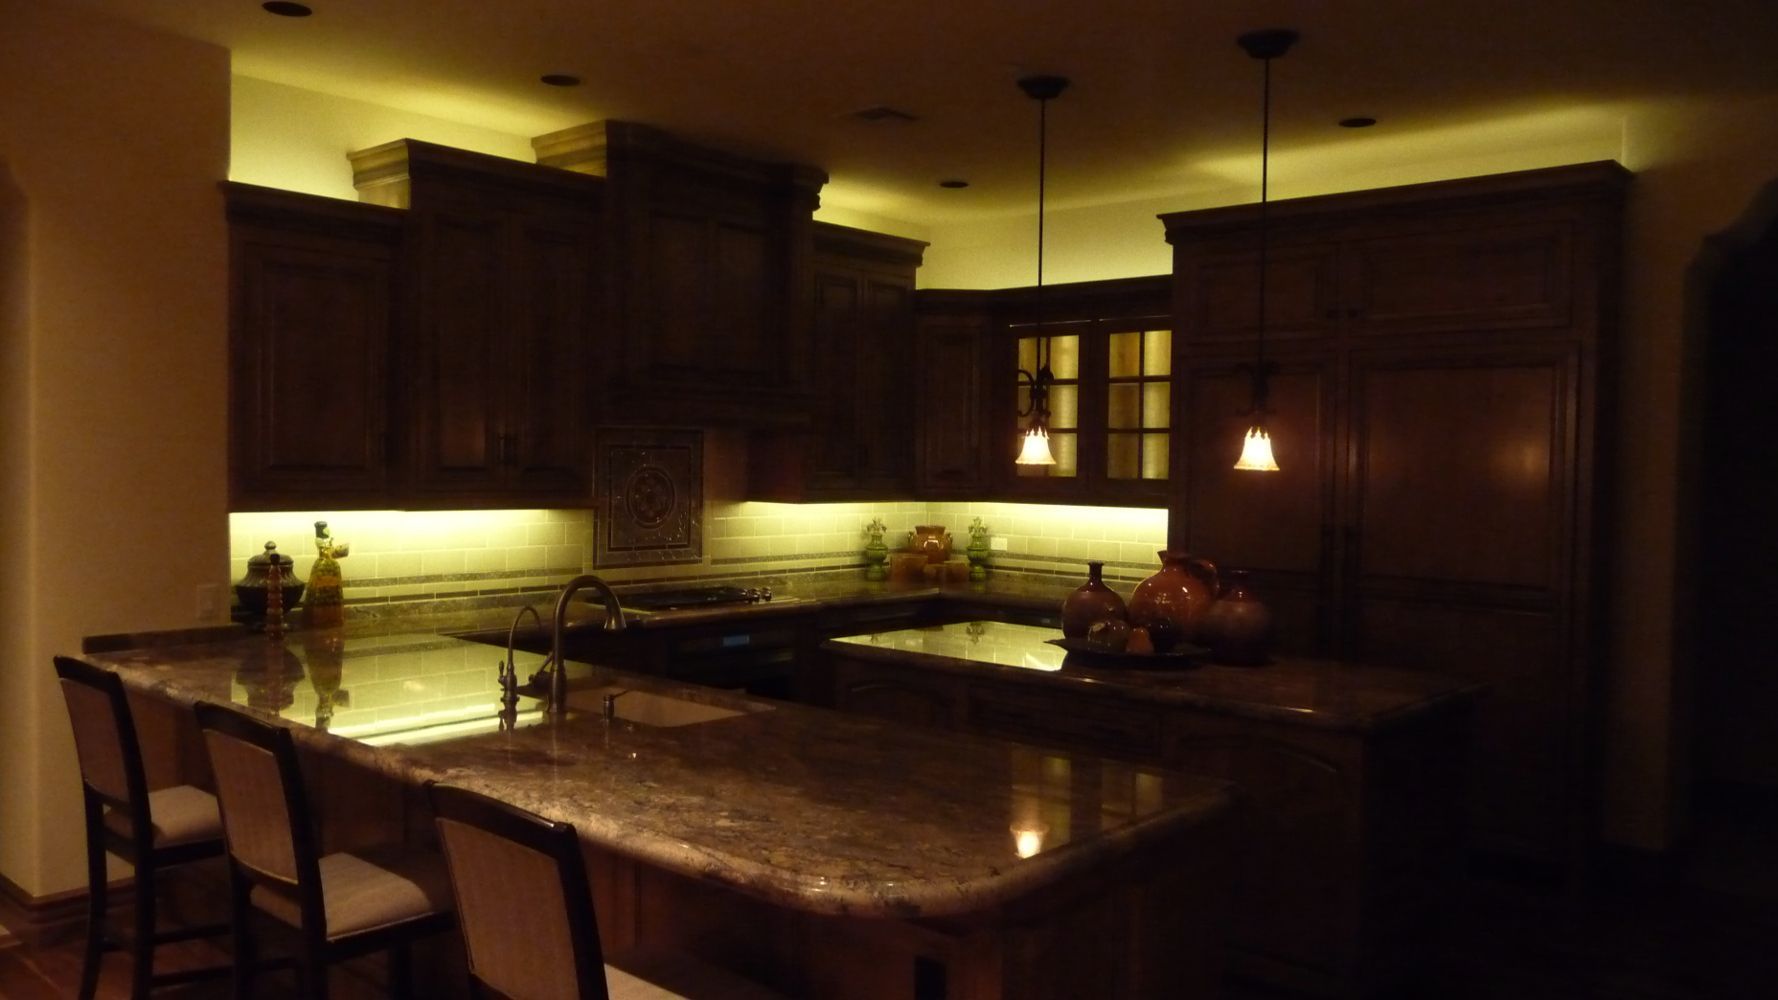 Led Lighting Tutorials Residential And Commercial Inspired Led Above Kitchen Cabinets Kitchen Cabinets Cabinet Lighting